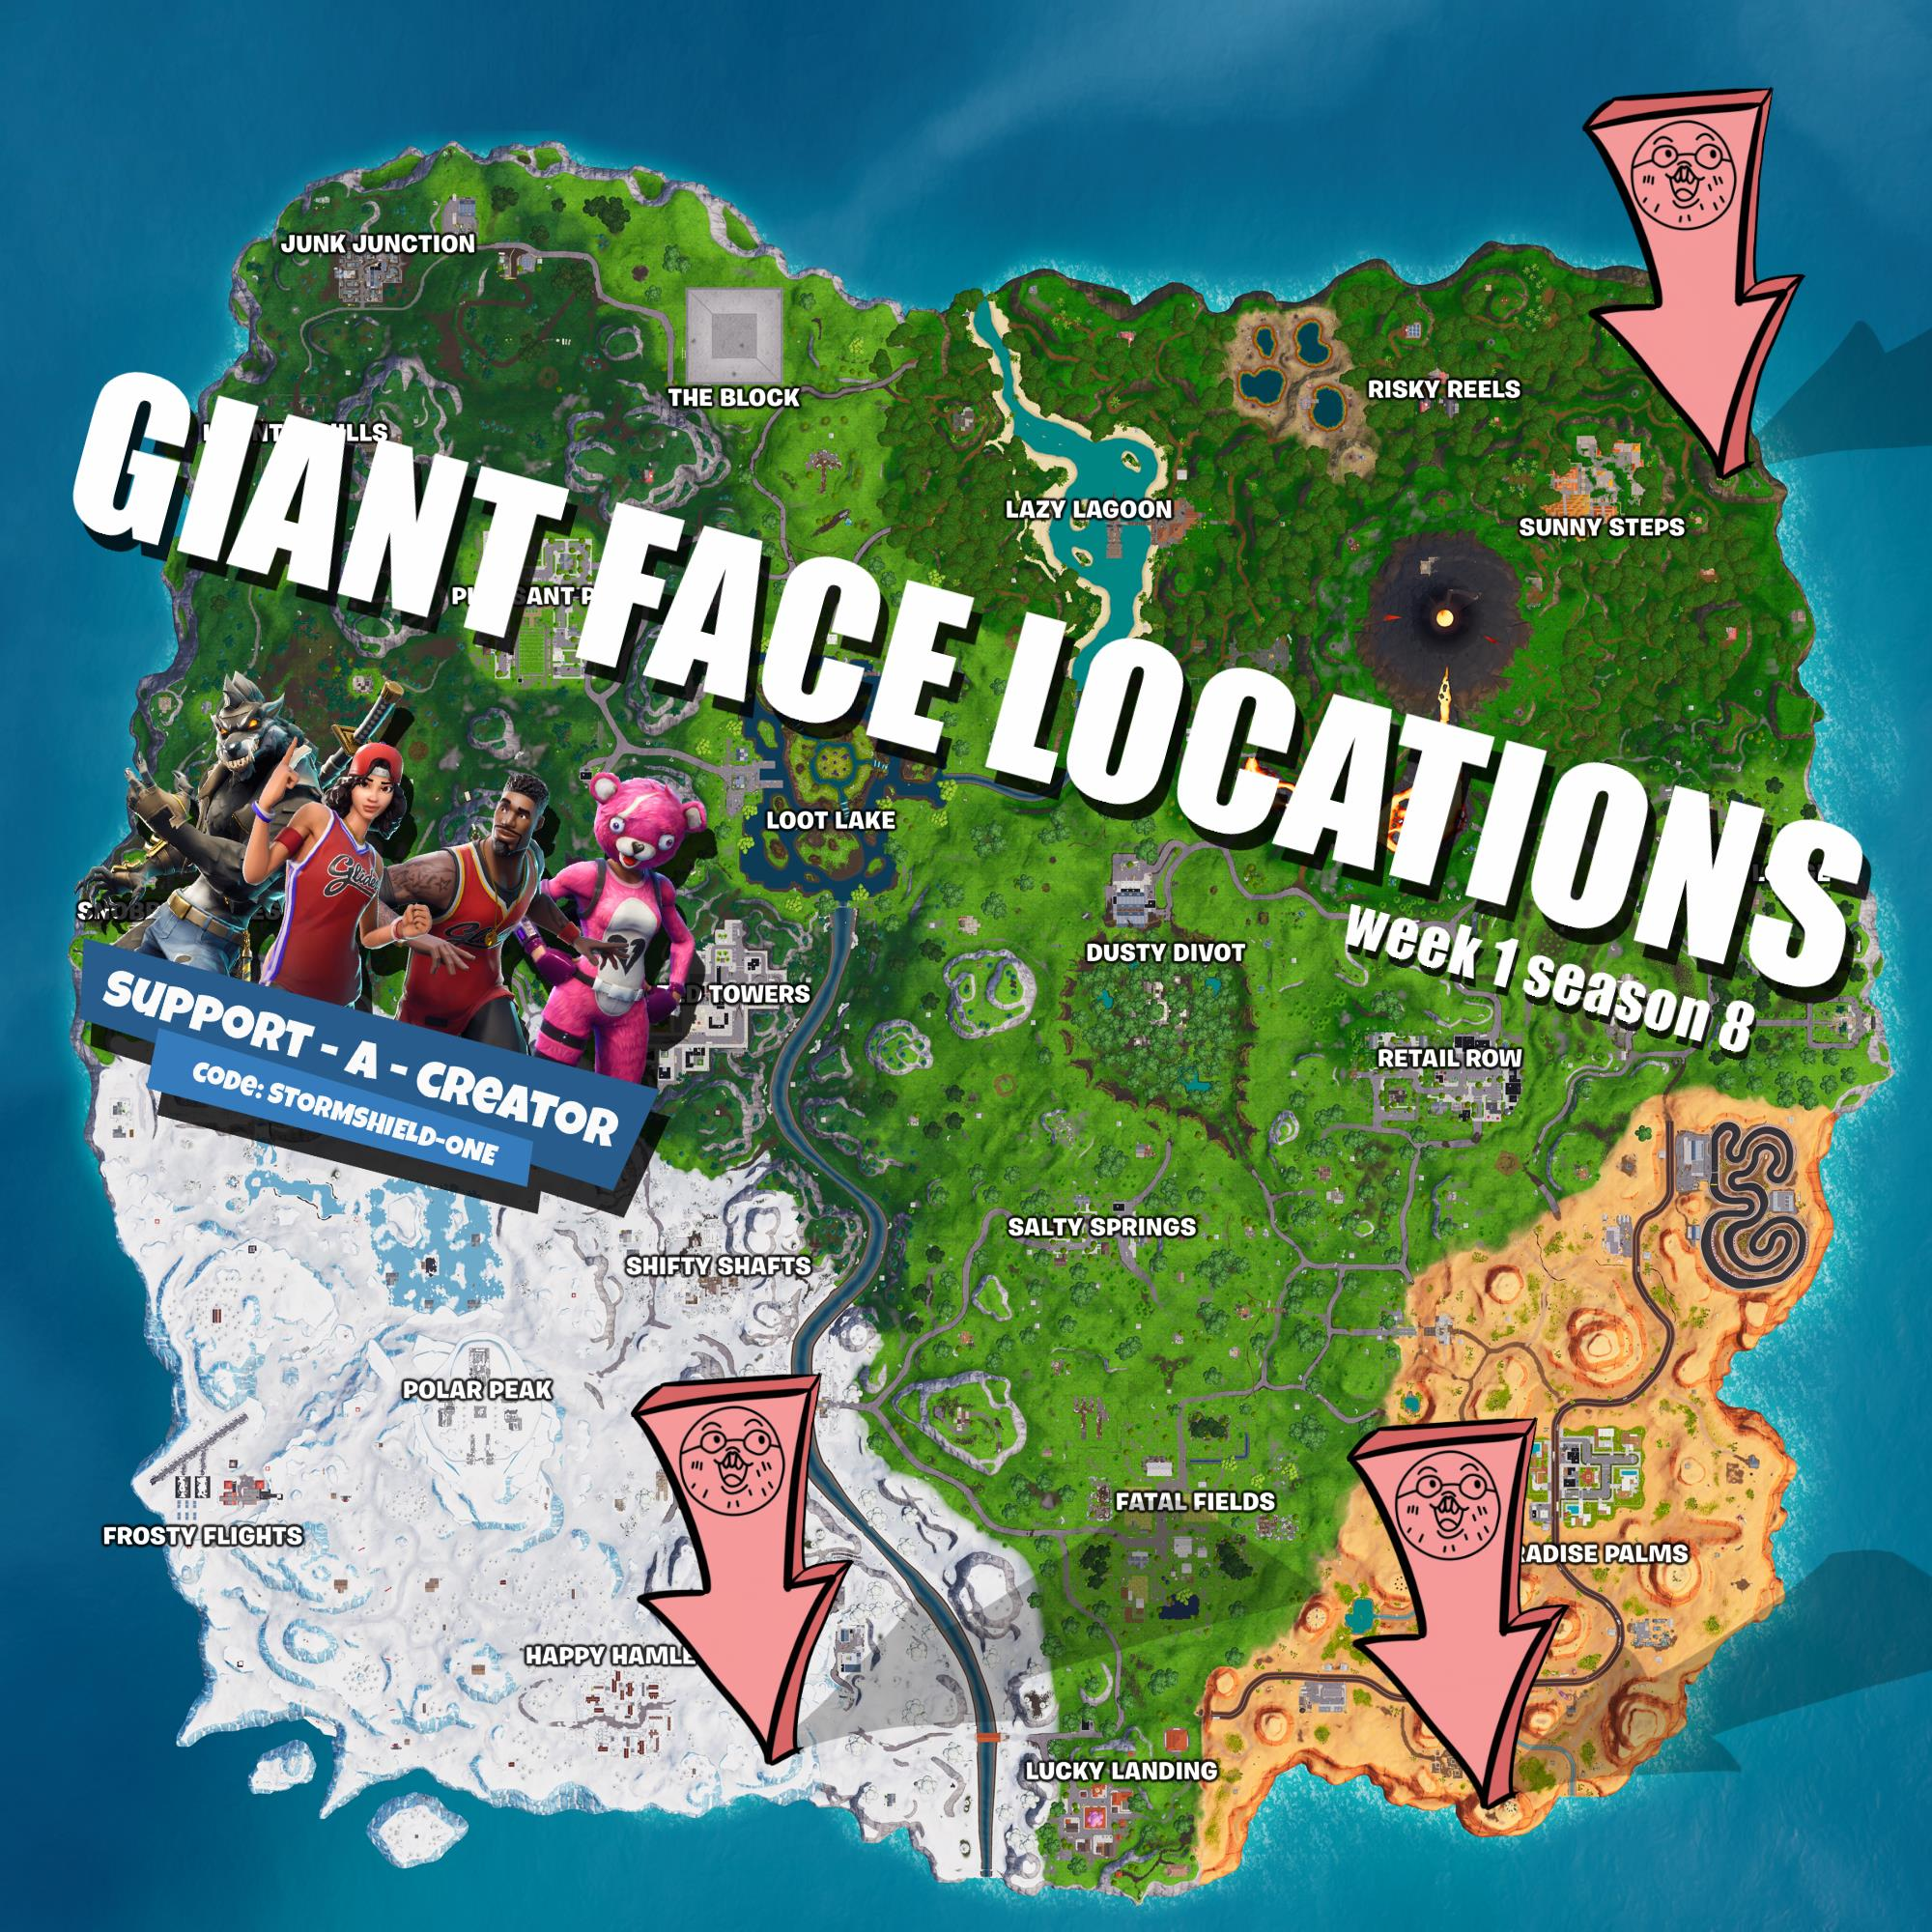 click for full resolution - fortnite visit a giant face map